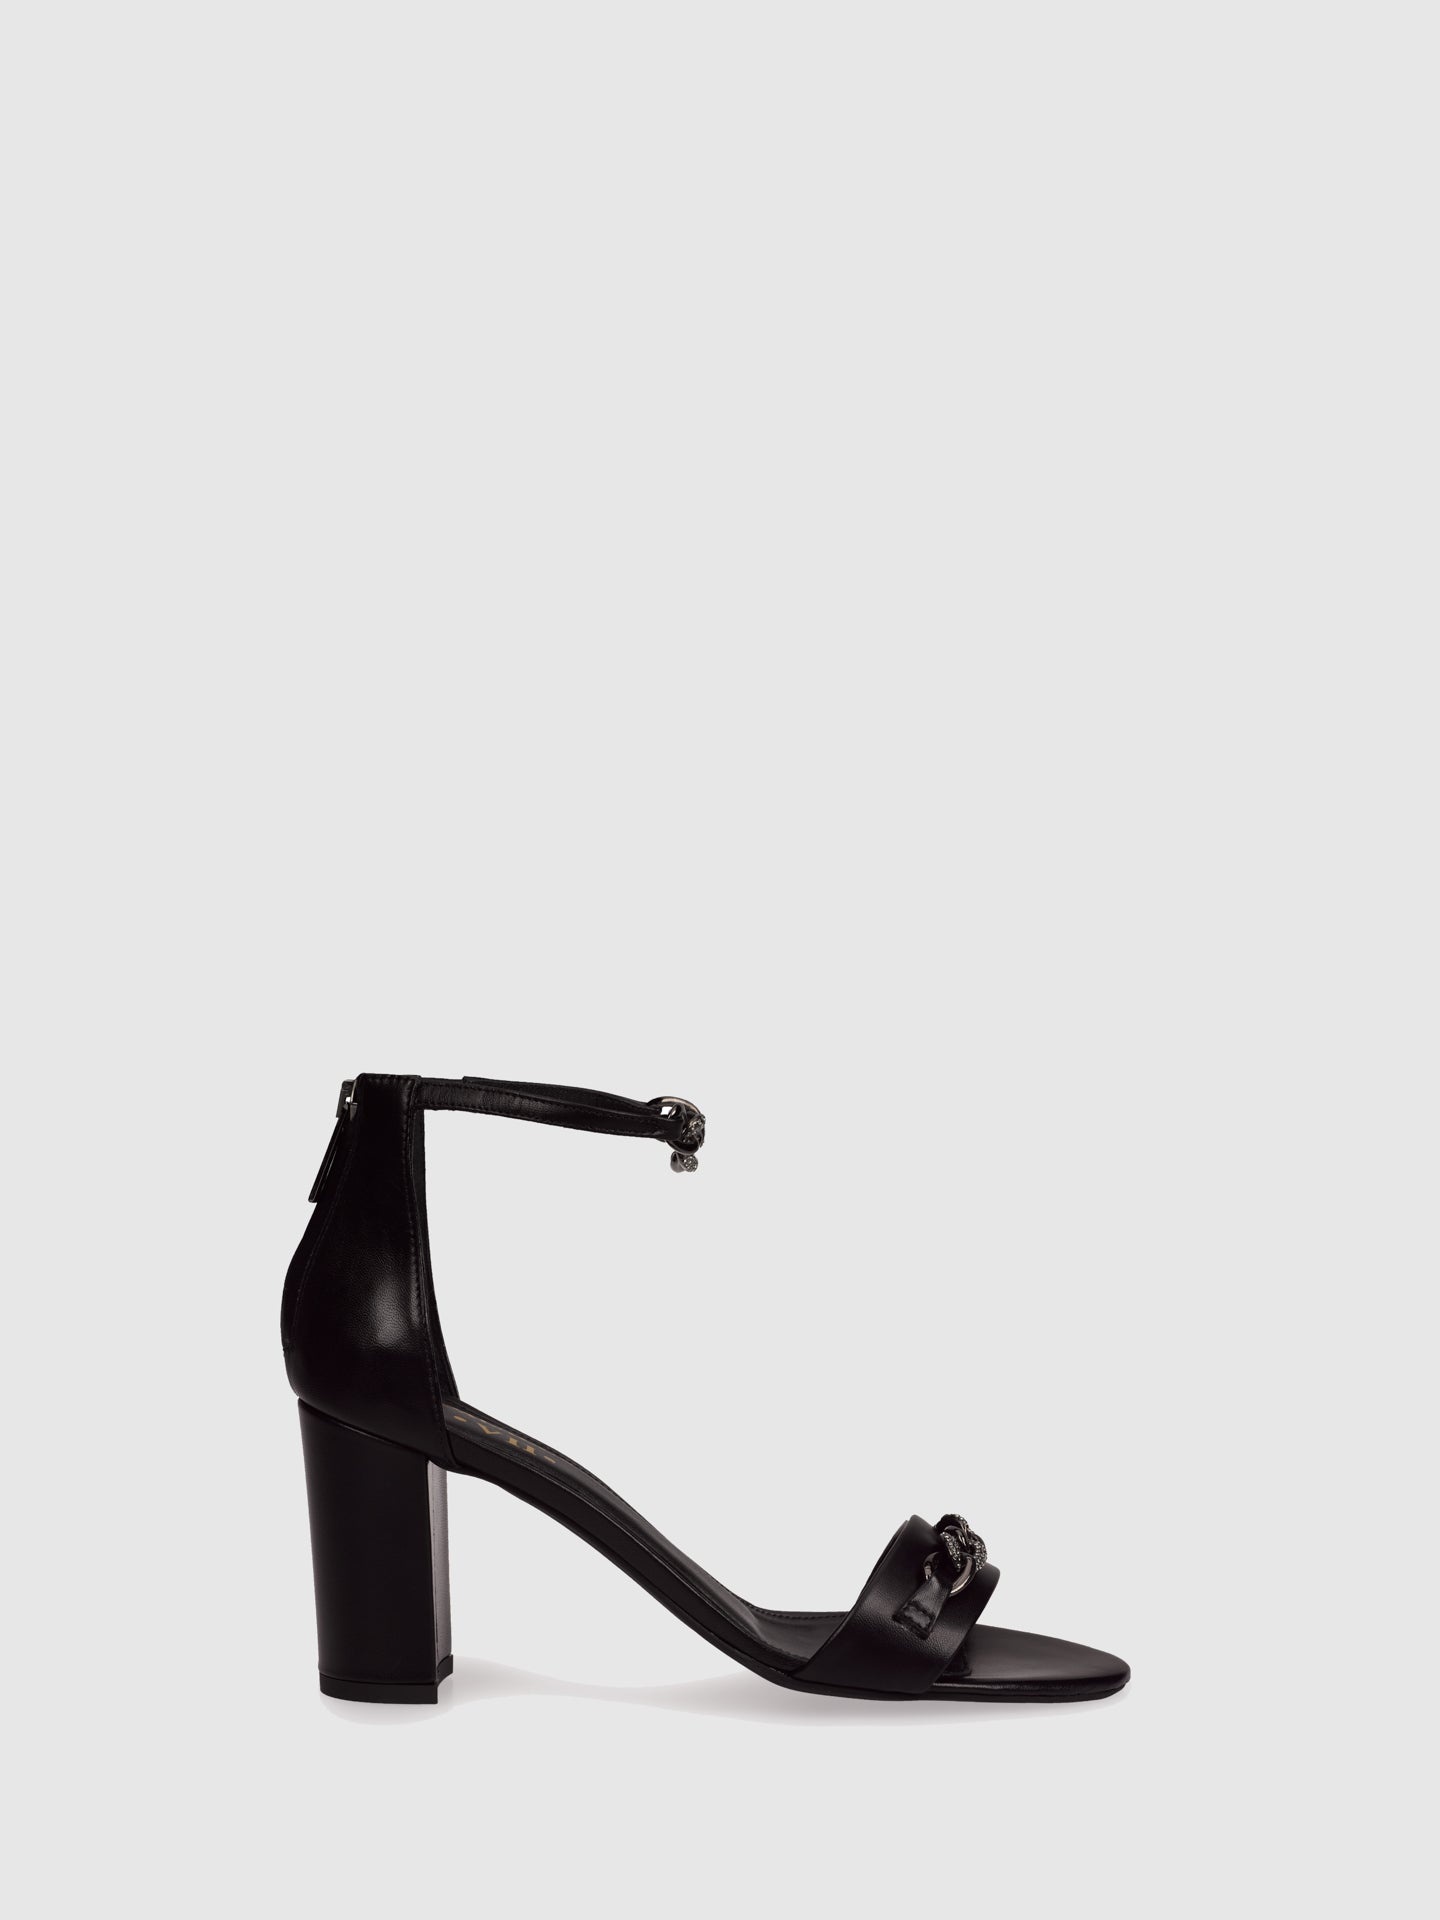 Palazzo VII Black Ankle Strap Sandals